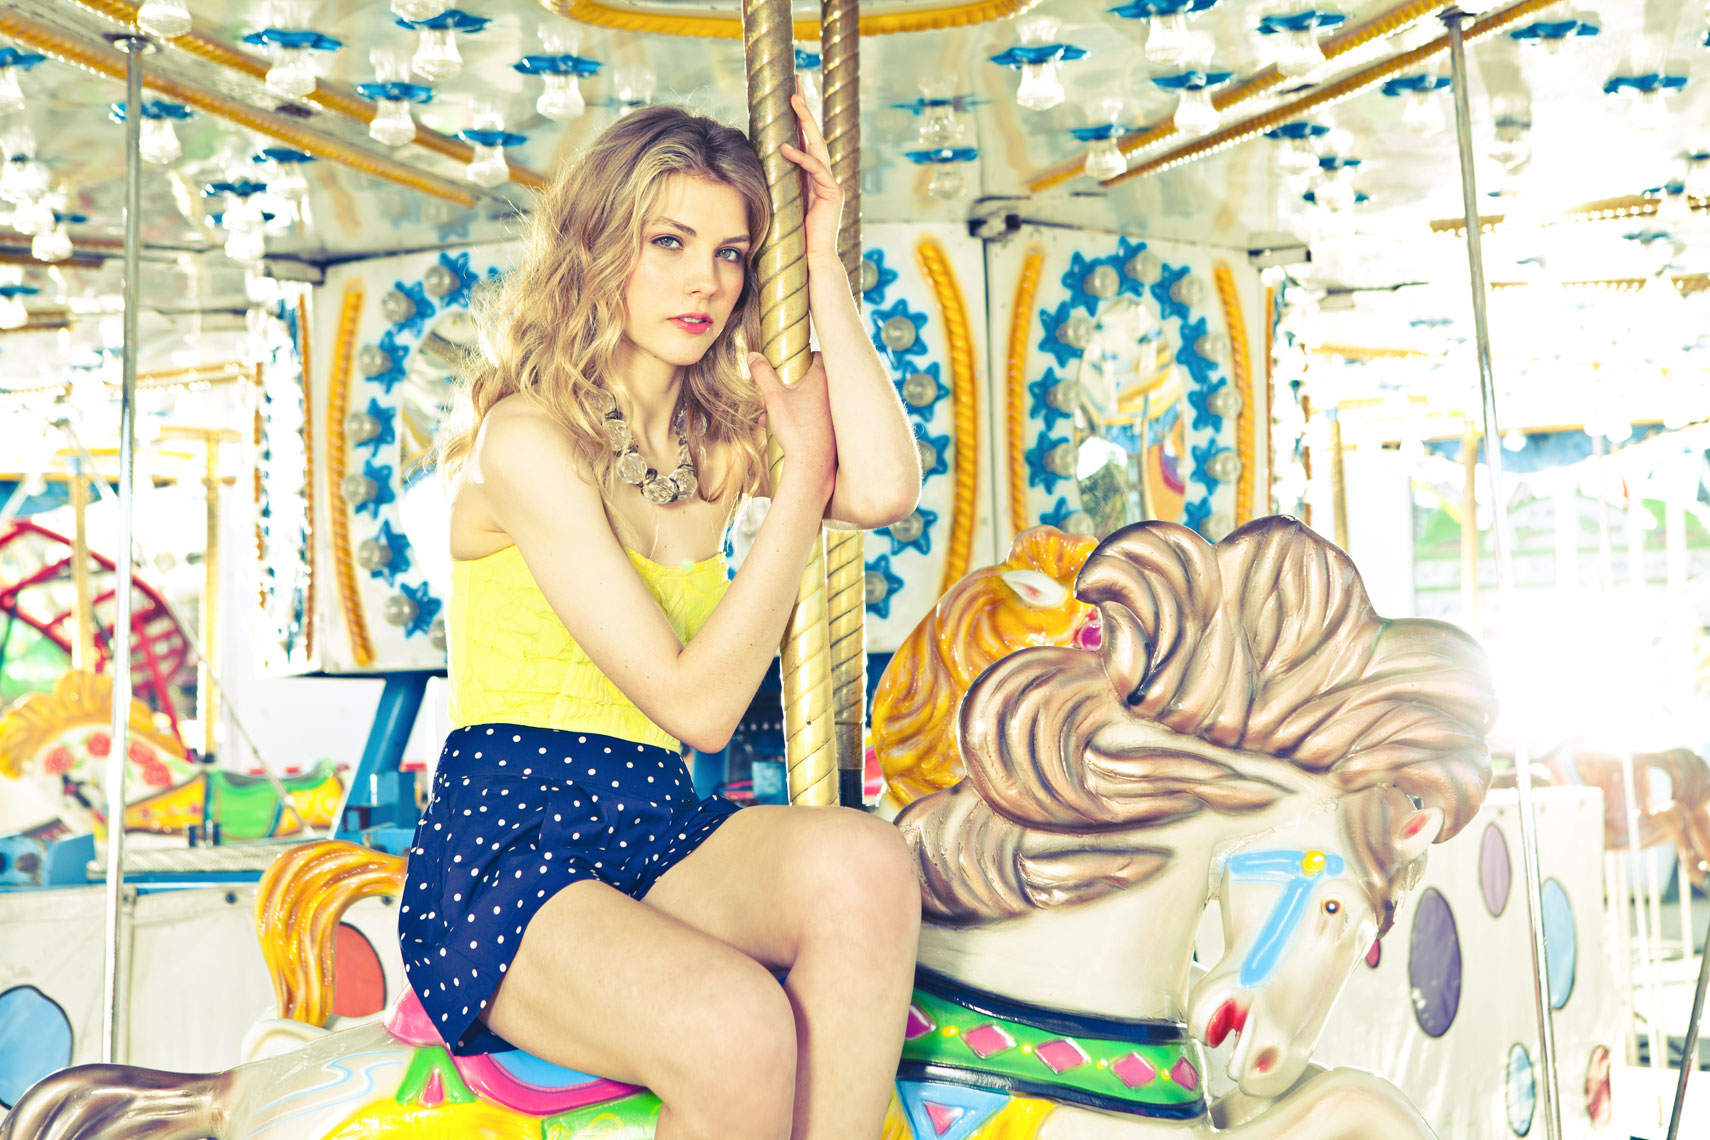 Fashion Editorial Story Photo Shoot at Carnival Carousel Ride Dallas Texas